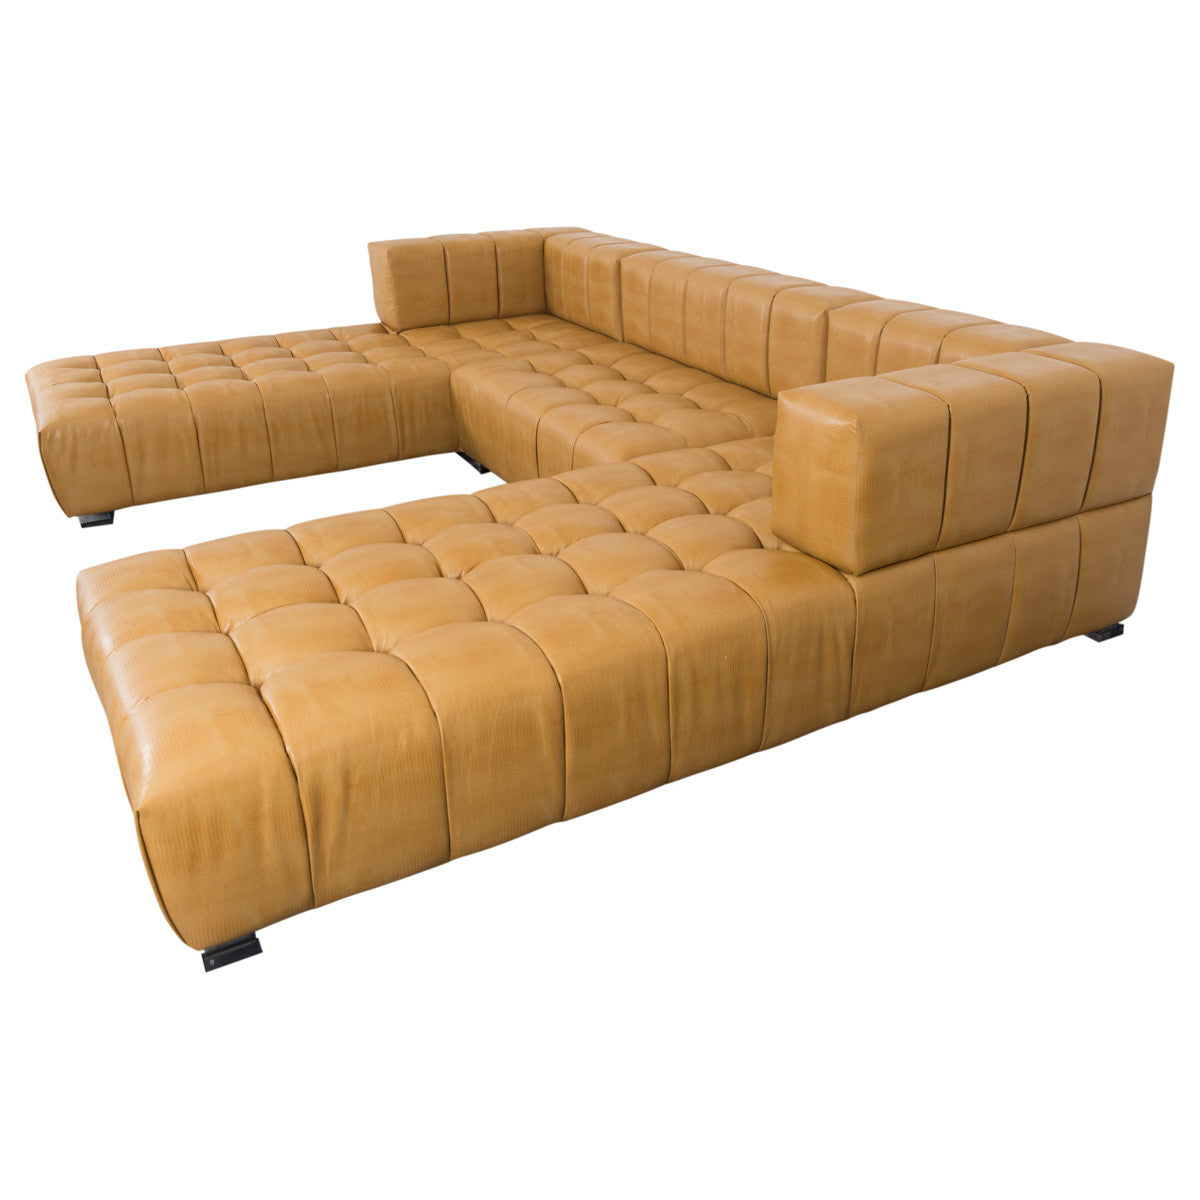 Delano Modular U-Sectional in Brown Faux Leather - ModShop1.com